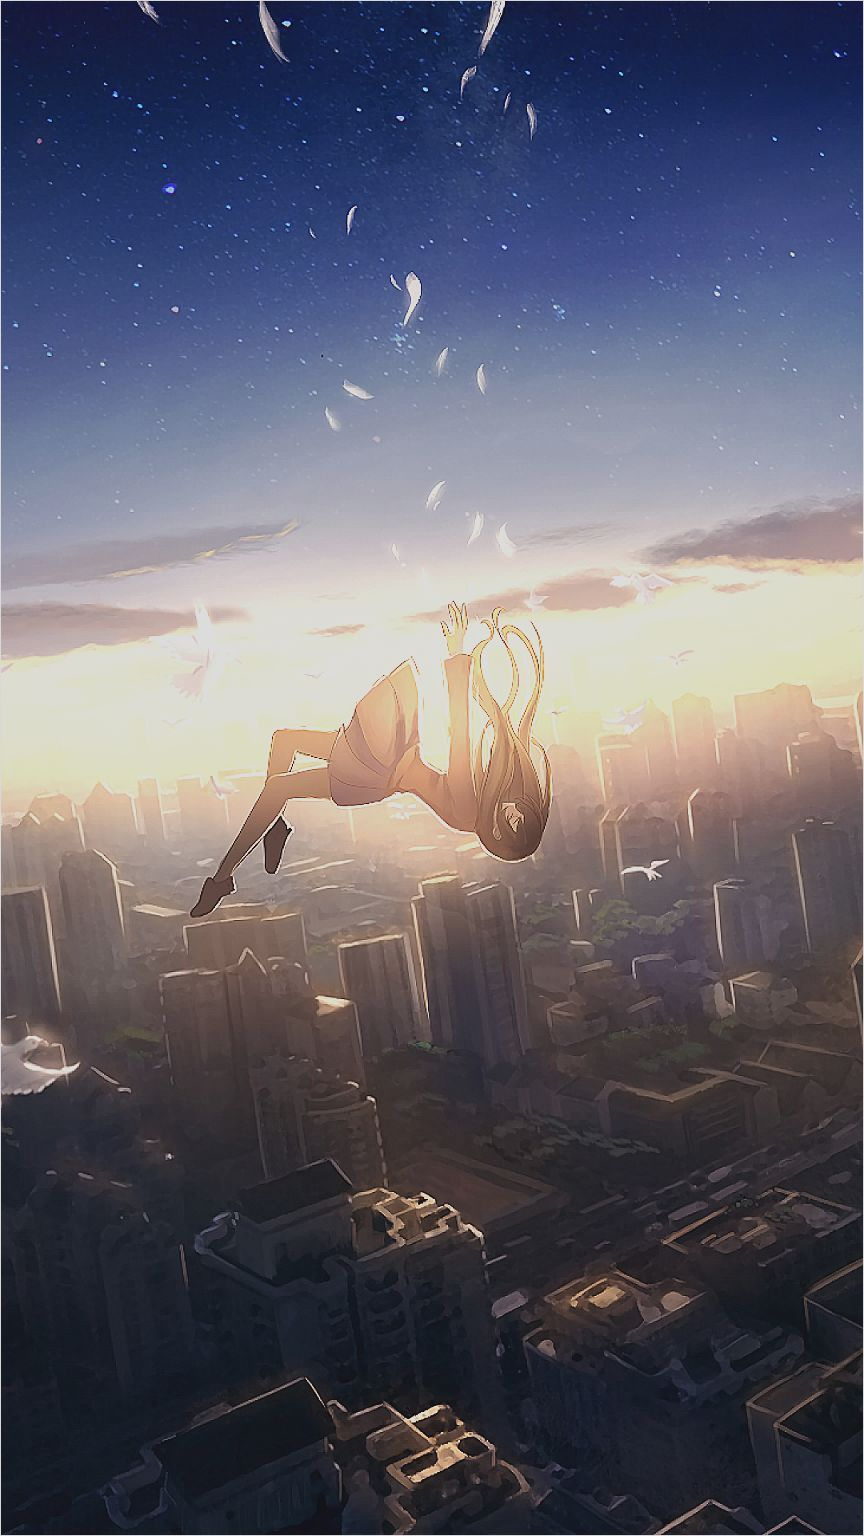 Over 200 Iphone And Samsung Amazing Beautiful Wallpapers In 2021 Anime Wallpaper Iphone Anime Wallpaper Beautiful Wallpapers